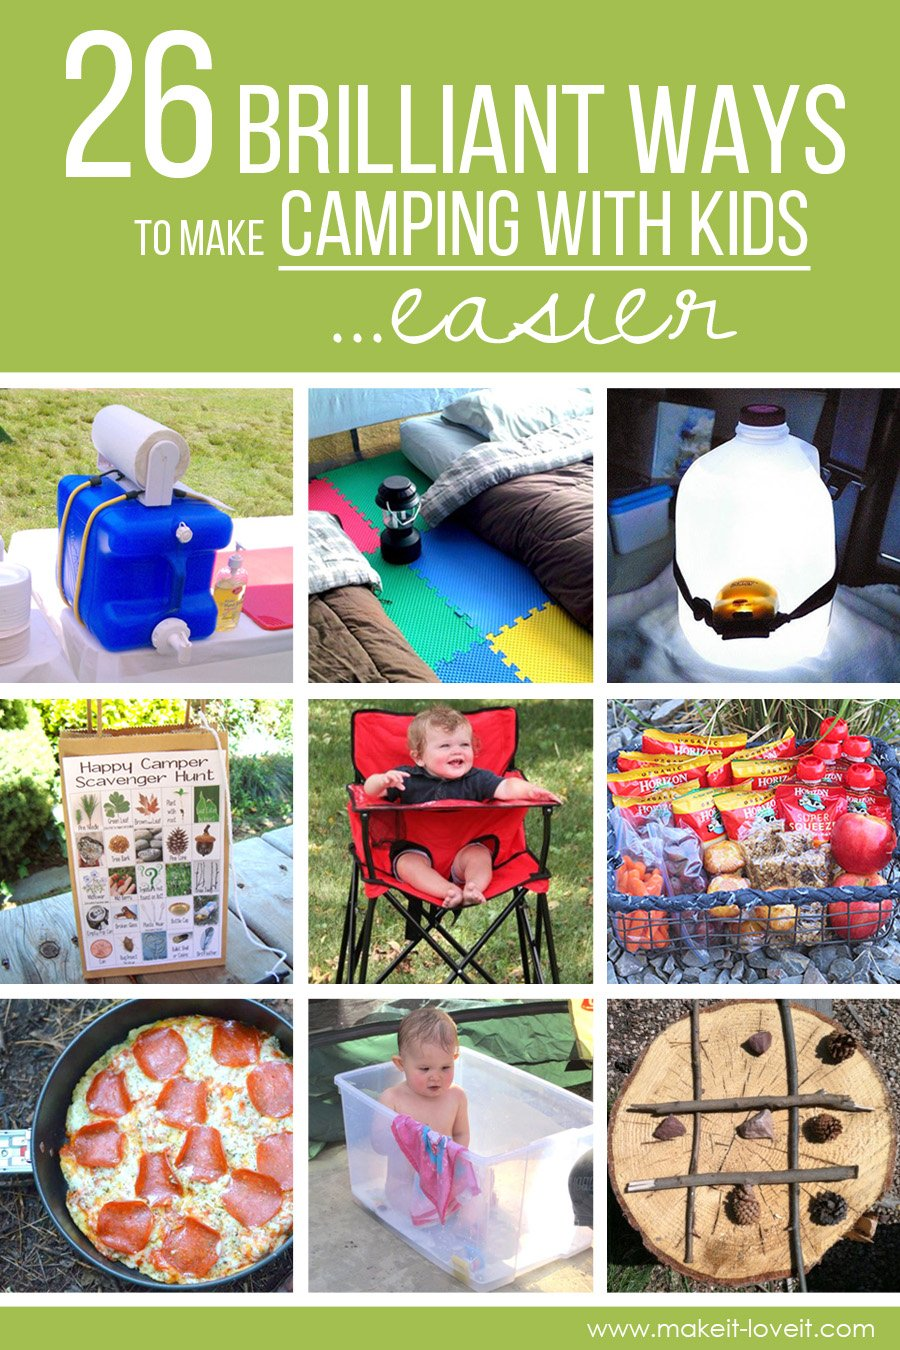 25 Brilliant Ideas To Make Camping With Kids Easier